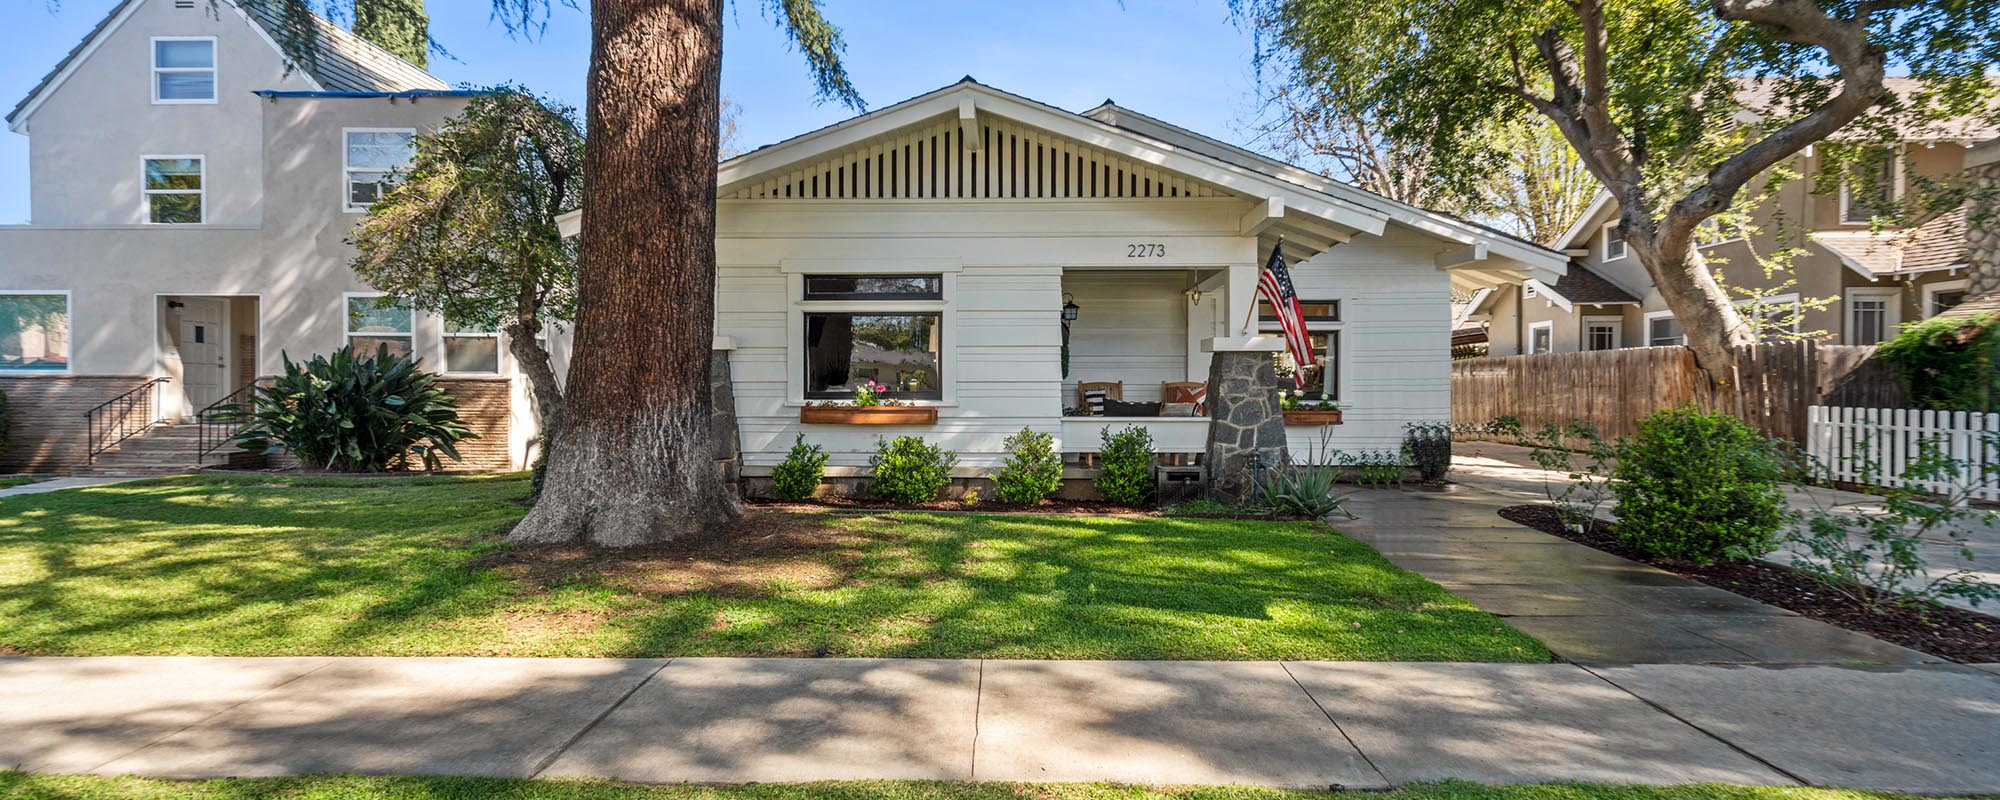 2273 5th Street La Verne, CA 91750 - Front of House